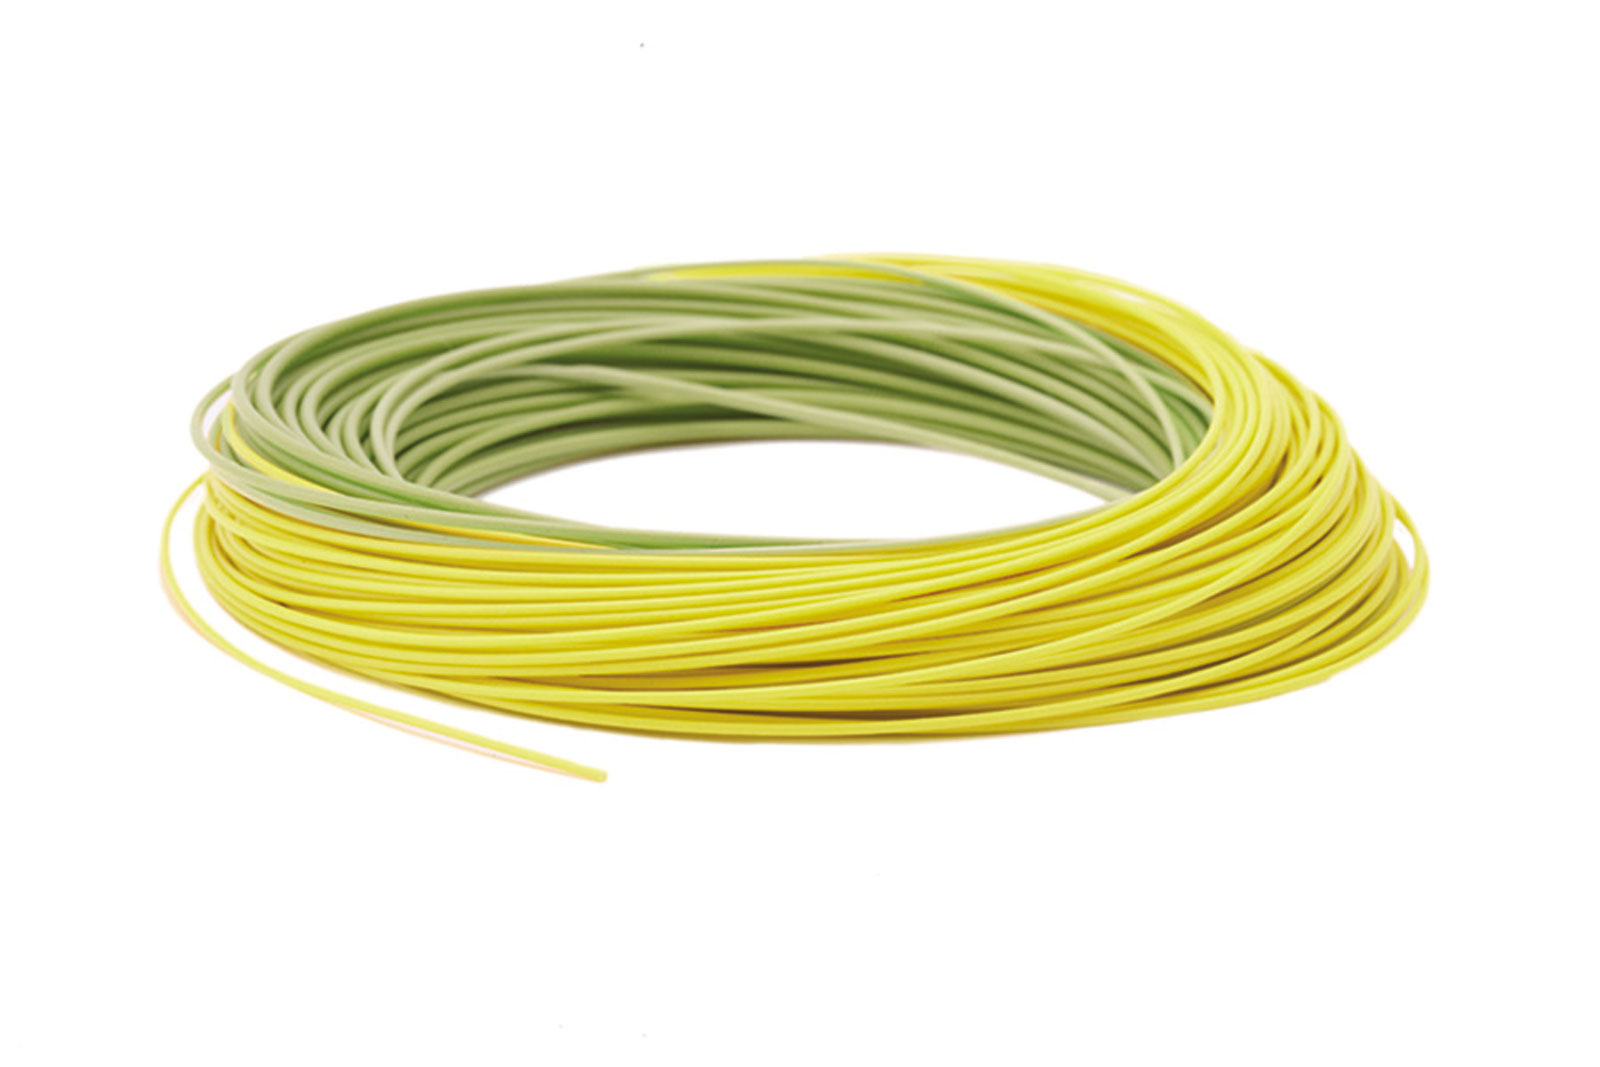 Rio Gold Fly Line Floating Weight Forward Wf Moss Gold